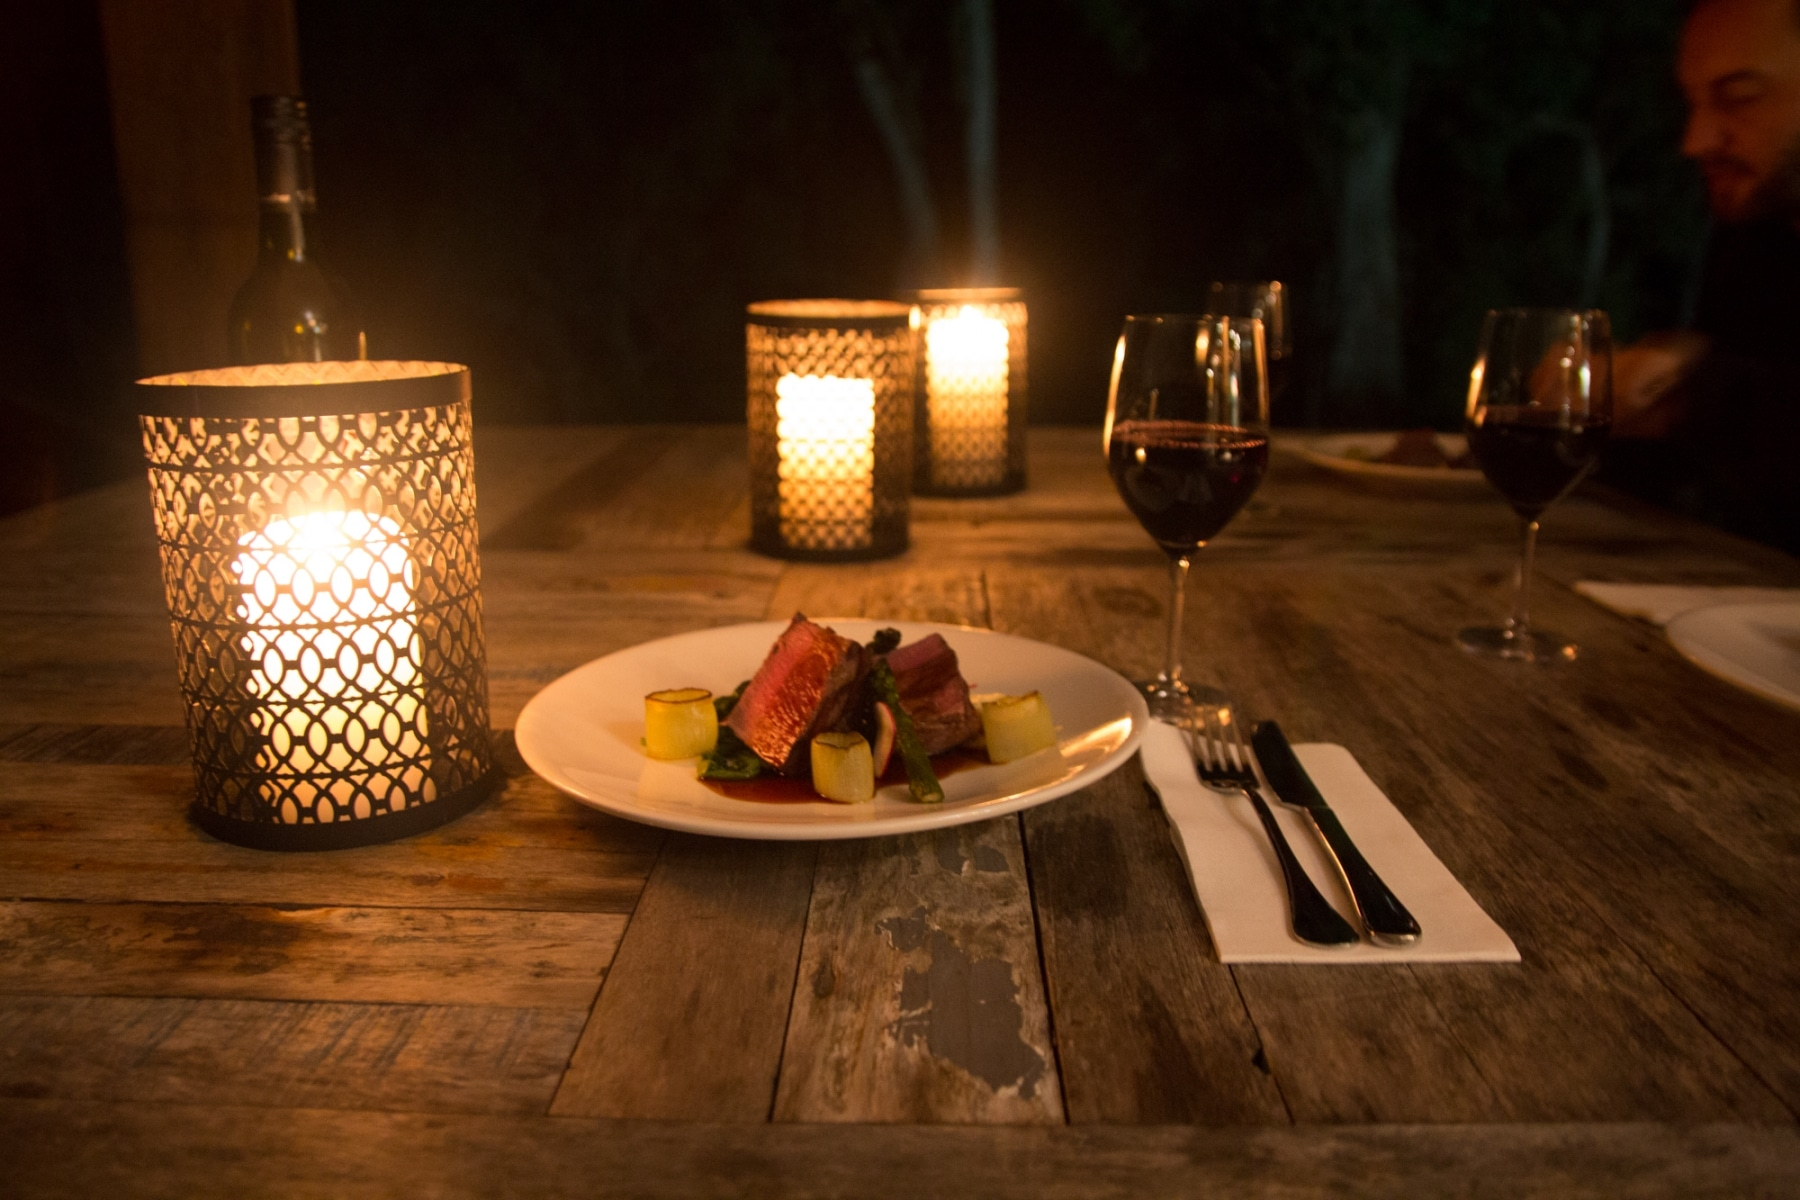 Food on candle lit table